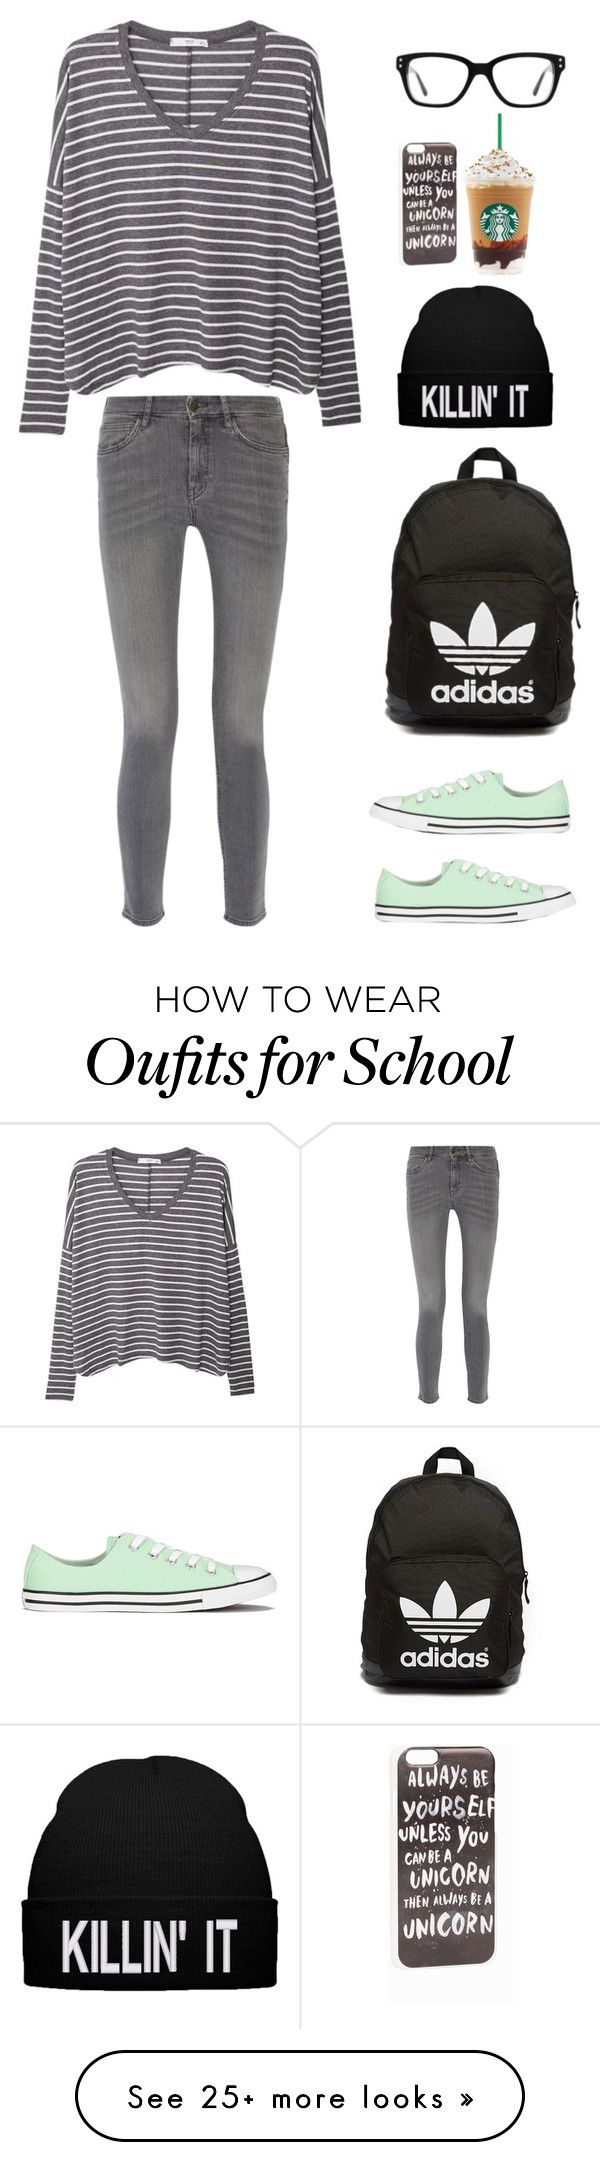 """""""School"""" by littlepumpkinelf on Polyvore featuring MANGO, MiH Jeans, Converse, JFR and adidas Originals"""